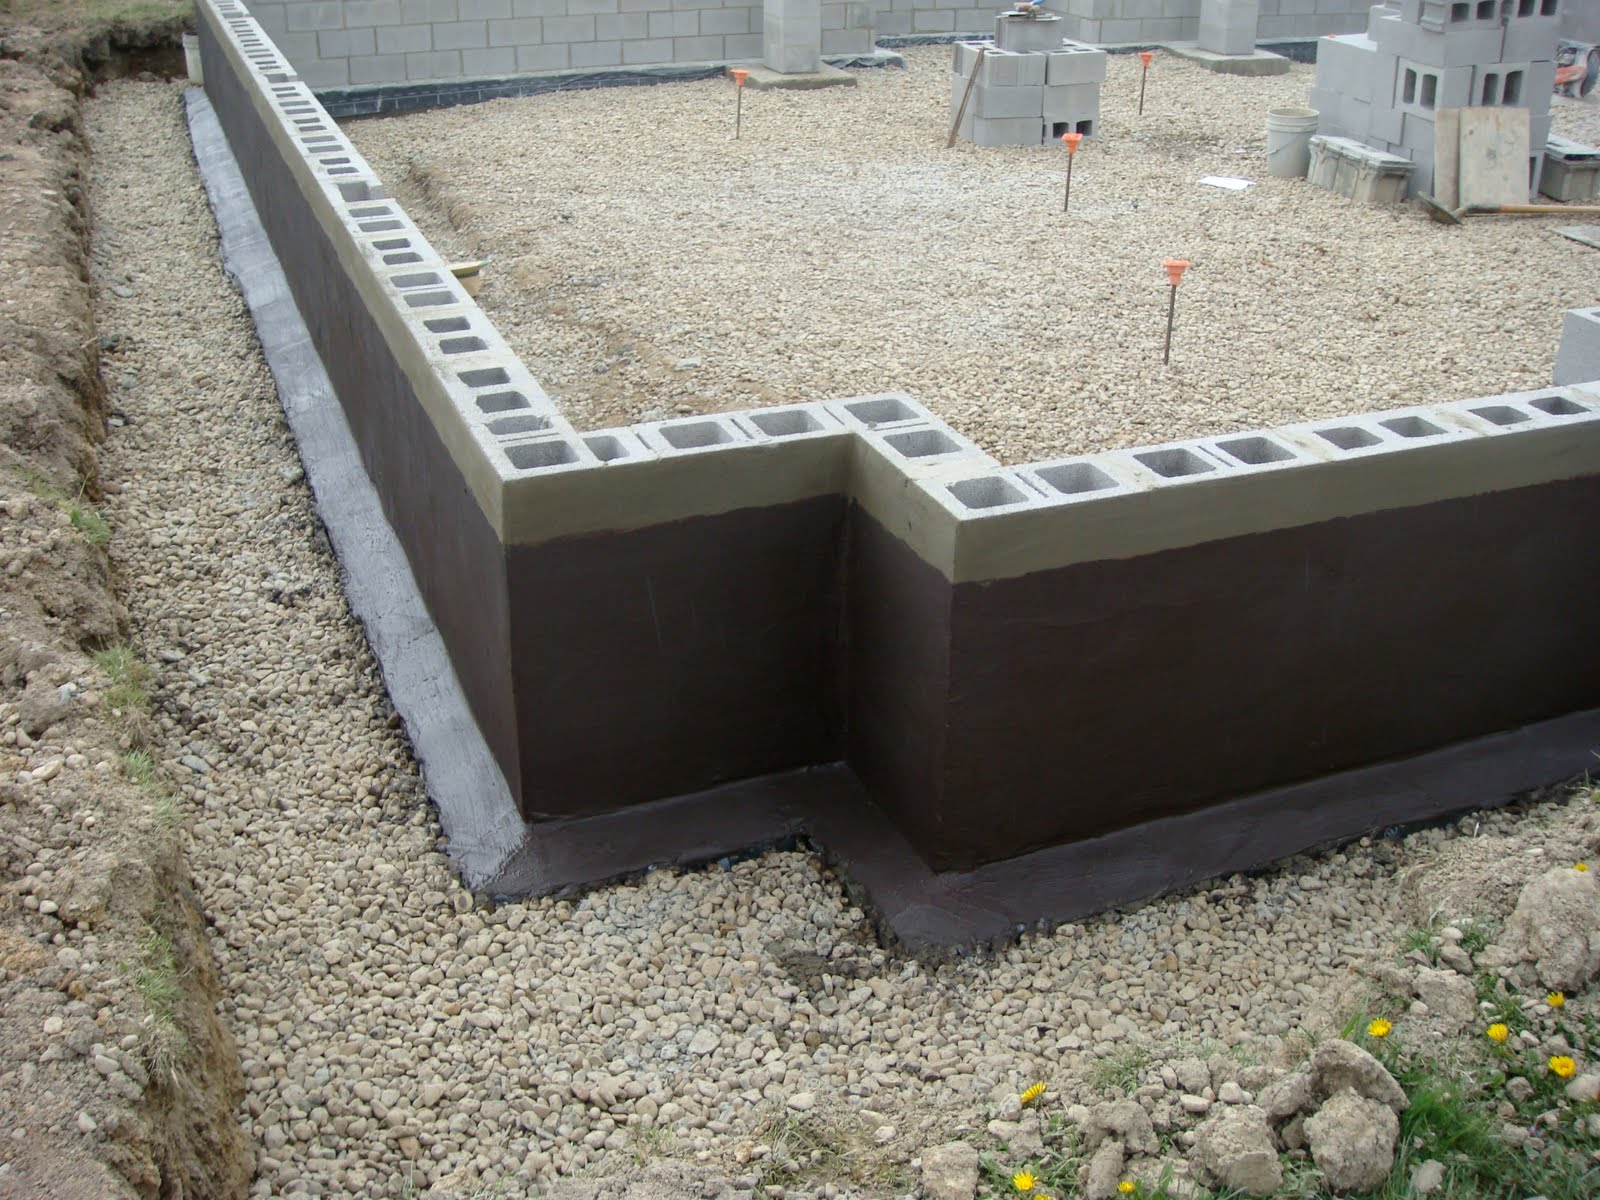 Foundations for How to build a concrete block wall foundation